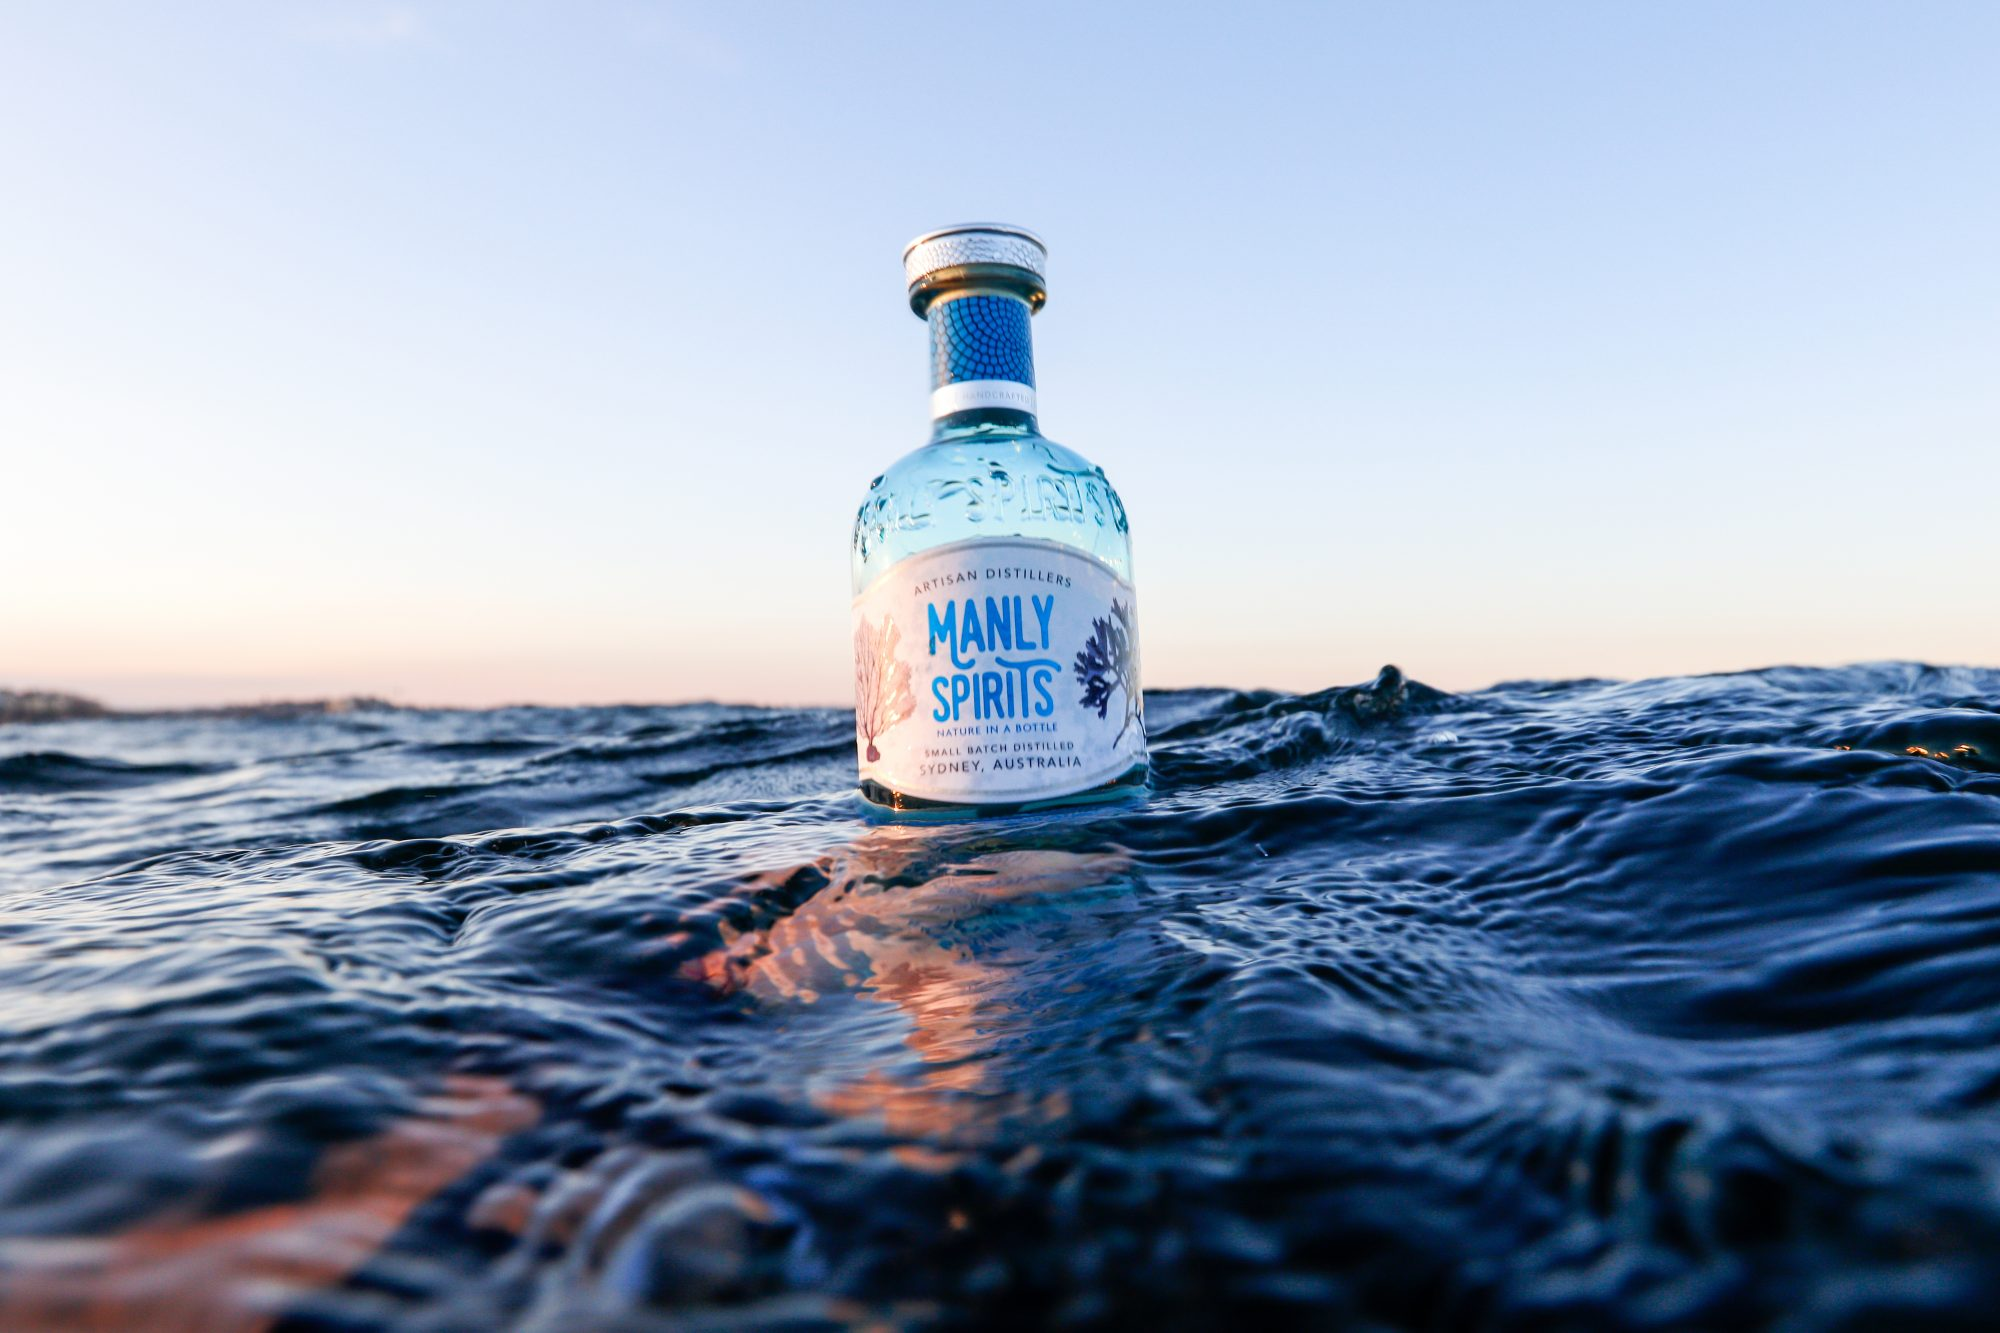 Manly Spirits Australian Dry Gin off Manly Spirits.image Piers Haskard